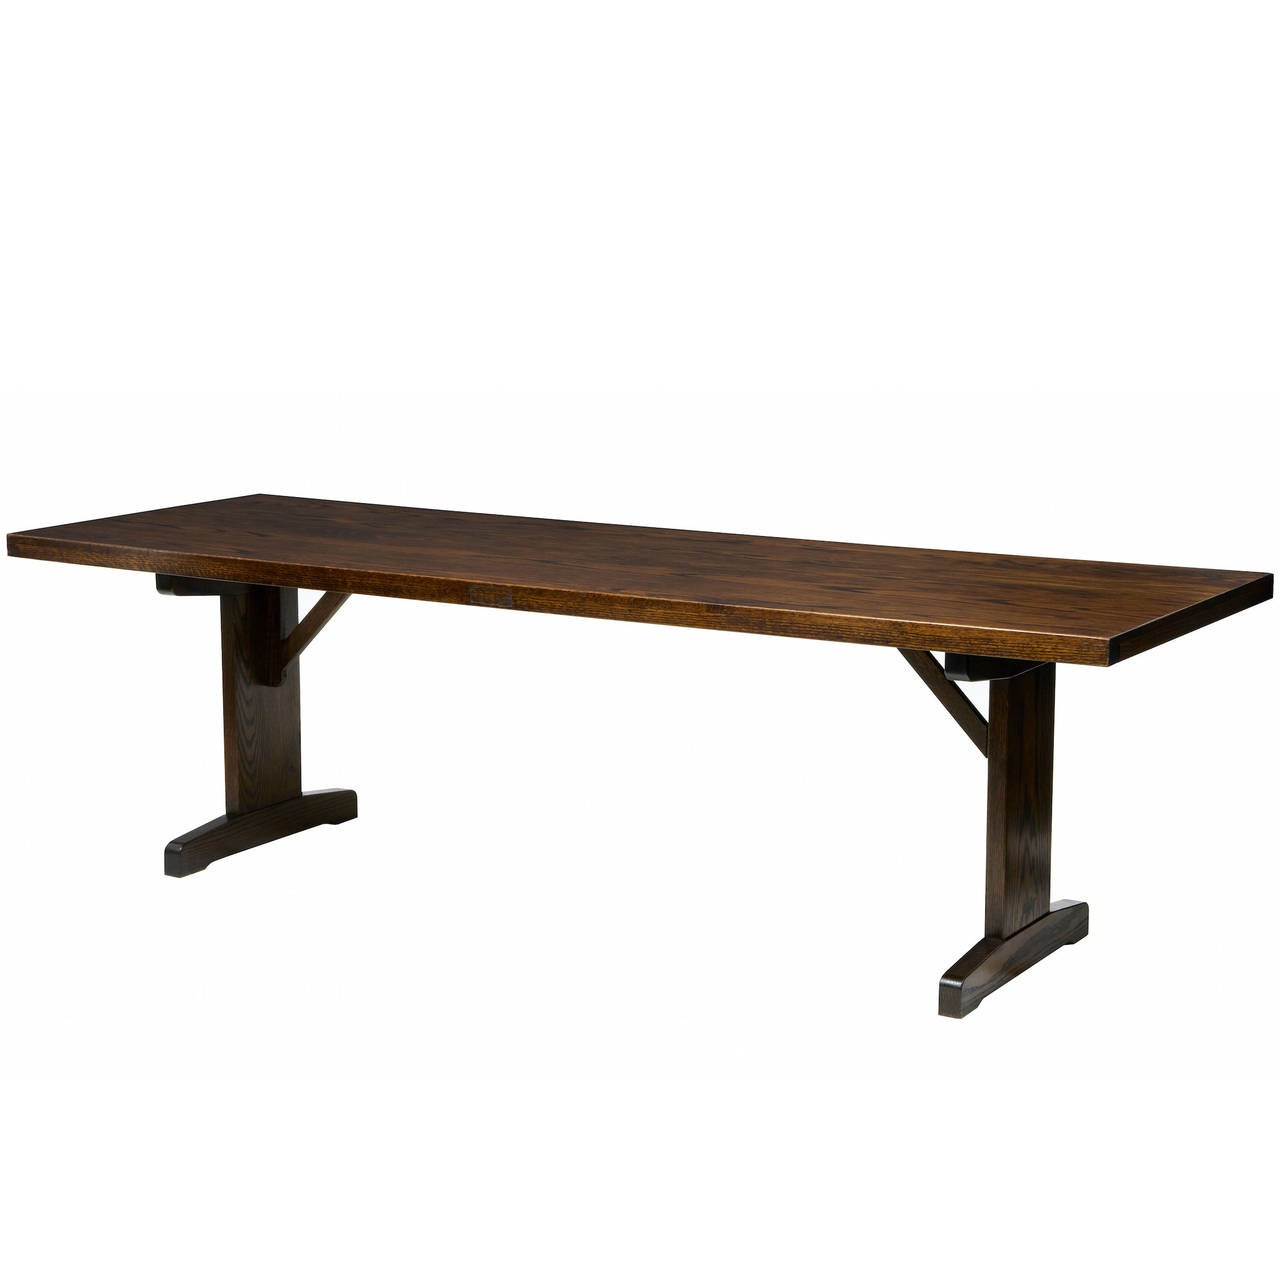 Large 1960s Oak Refectory Trestle Dining Table at 1stdibs : EA454TABLE0885l from www.1stdibs.com size 1280 x 1280 jpeg 44kB